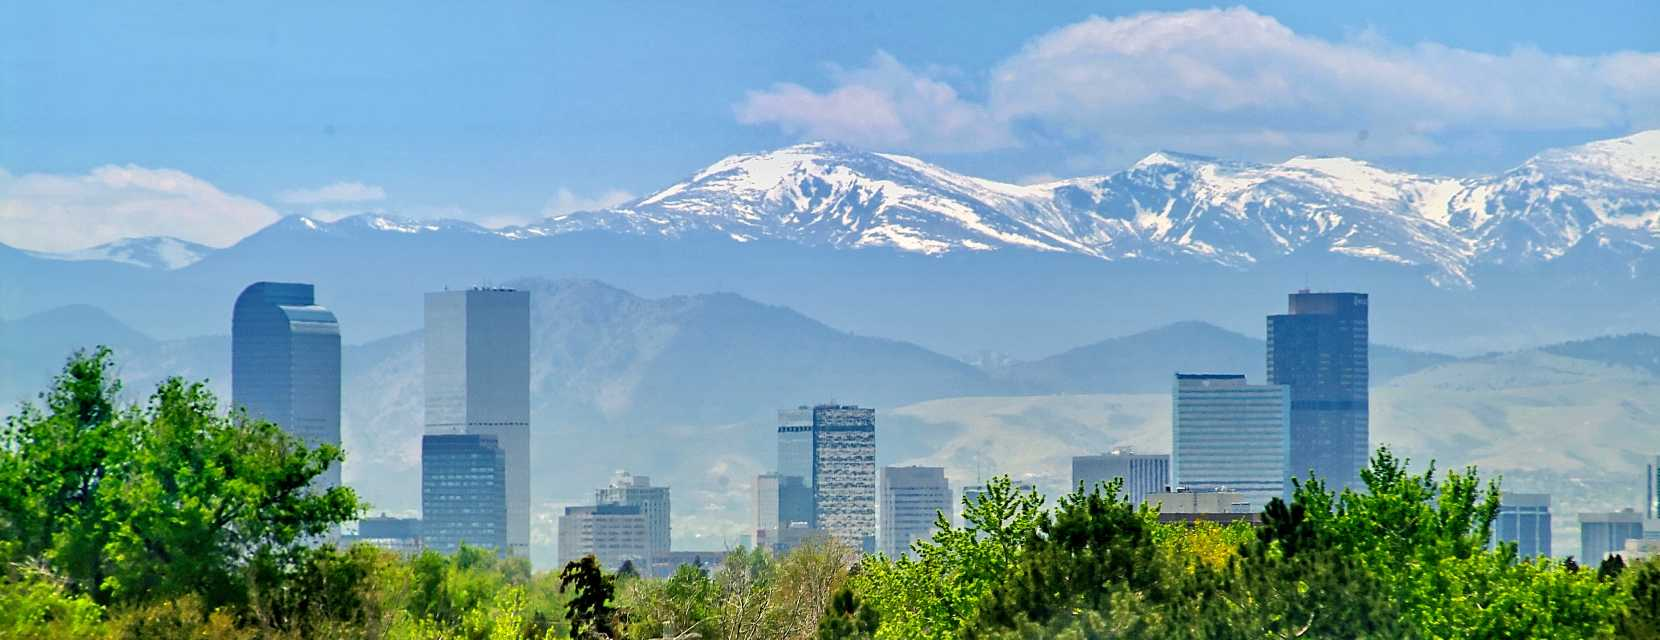 Denver Mountain Parks | VISIT DENVER